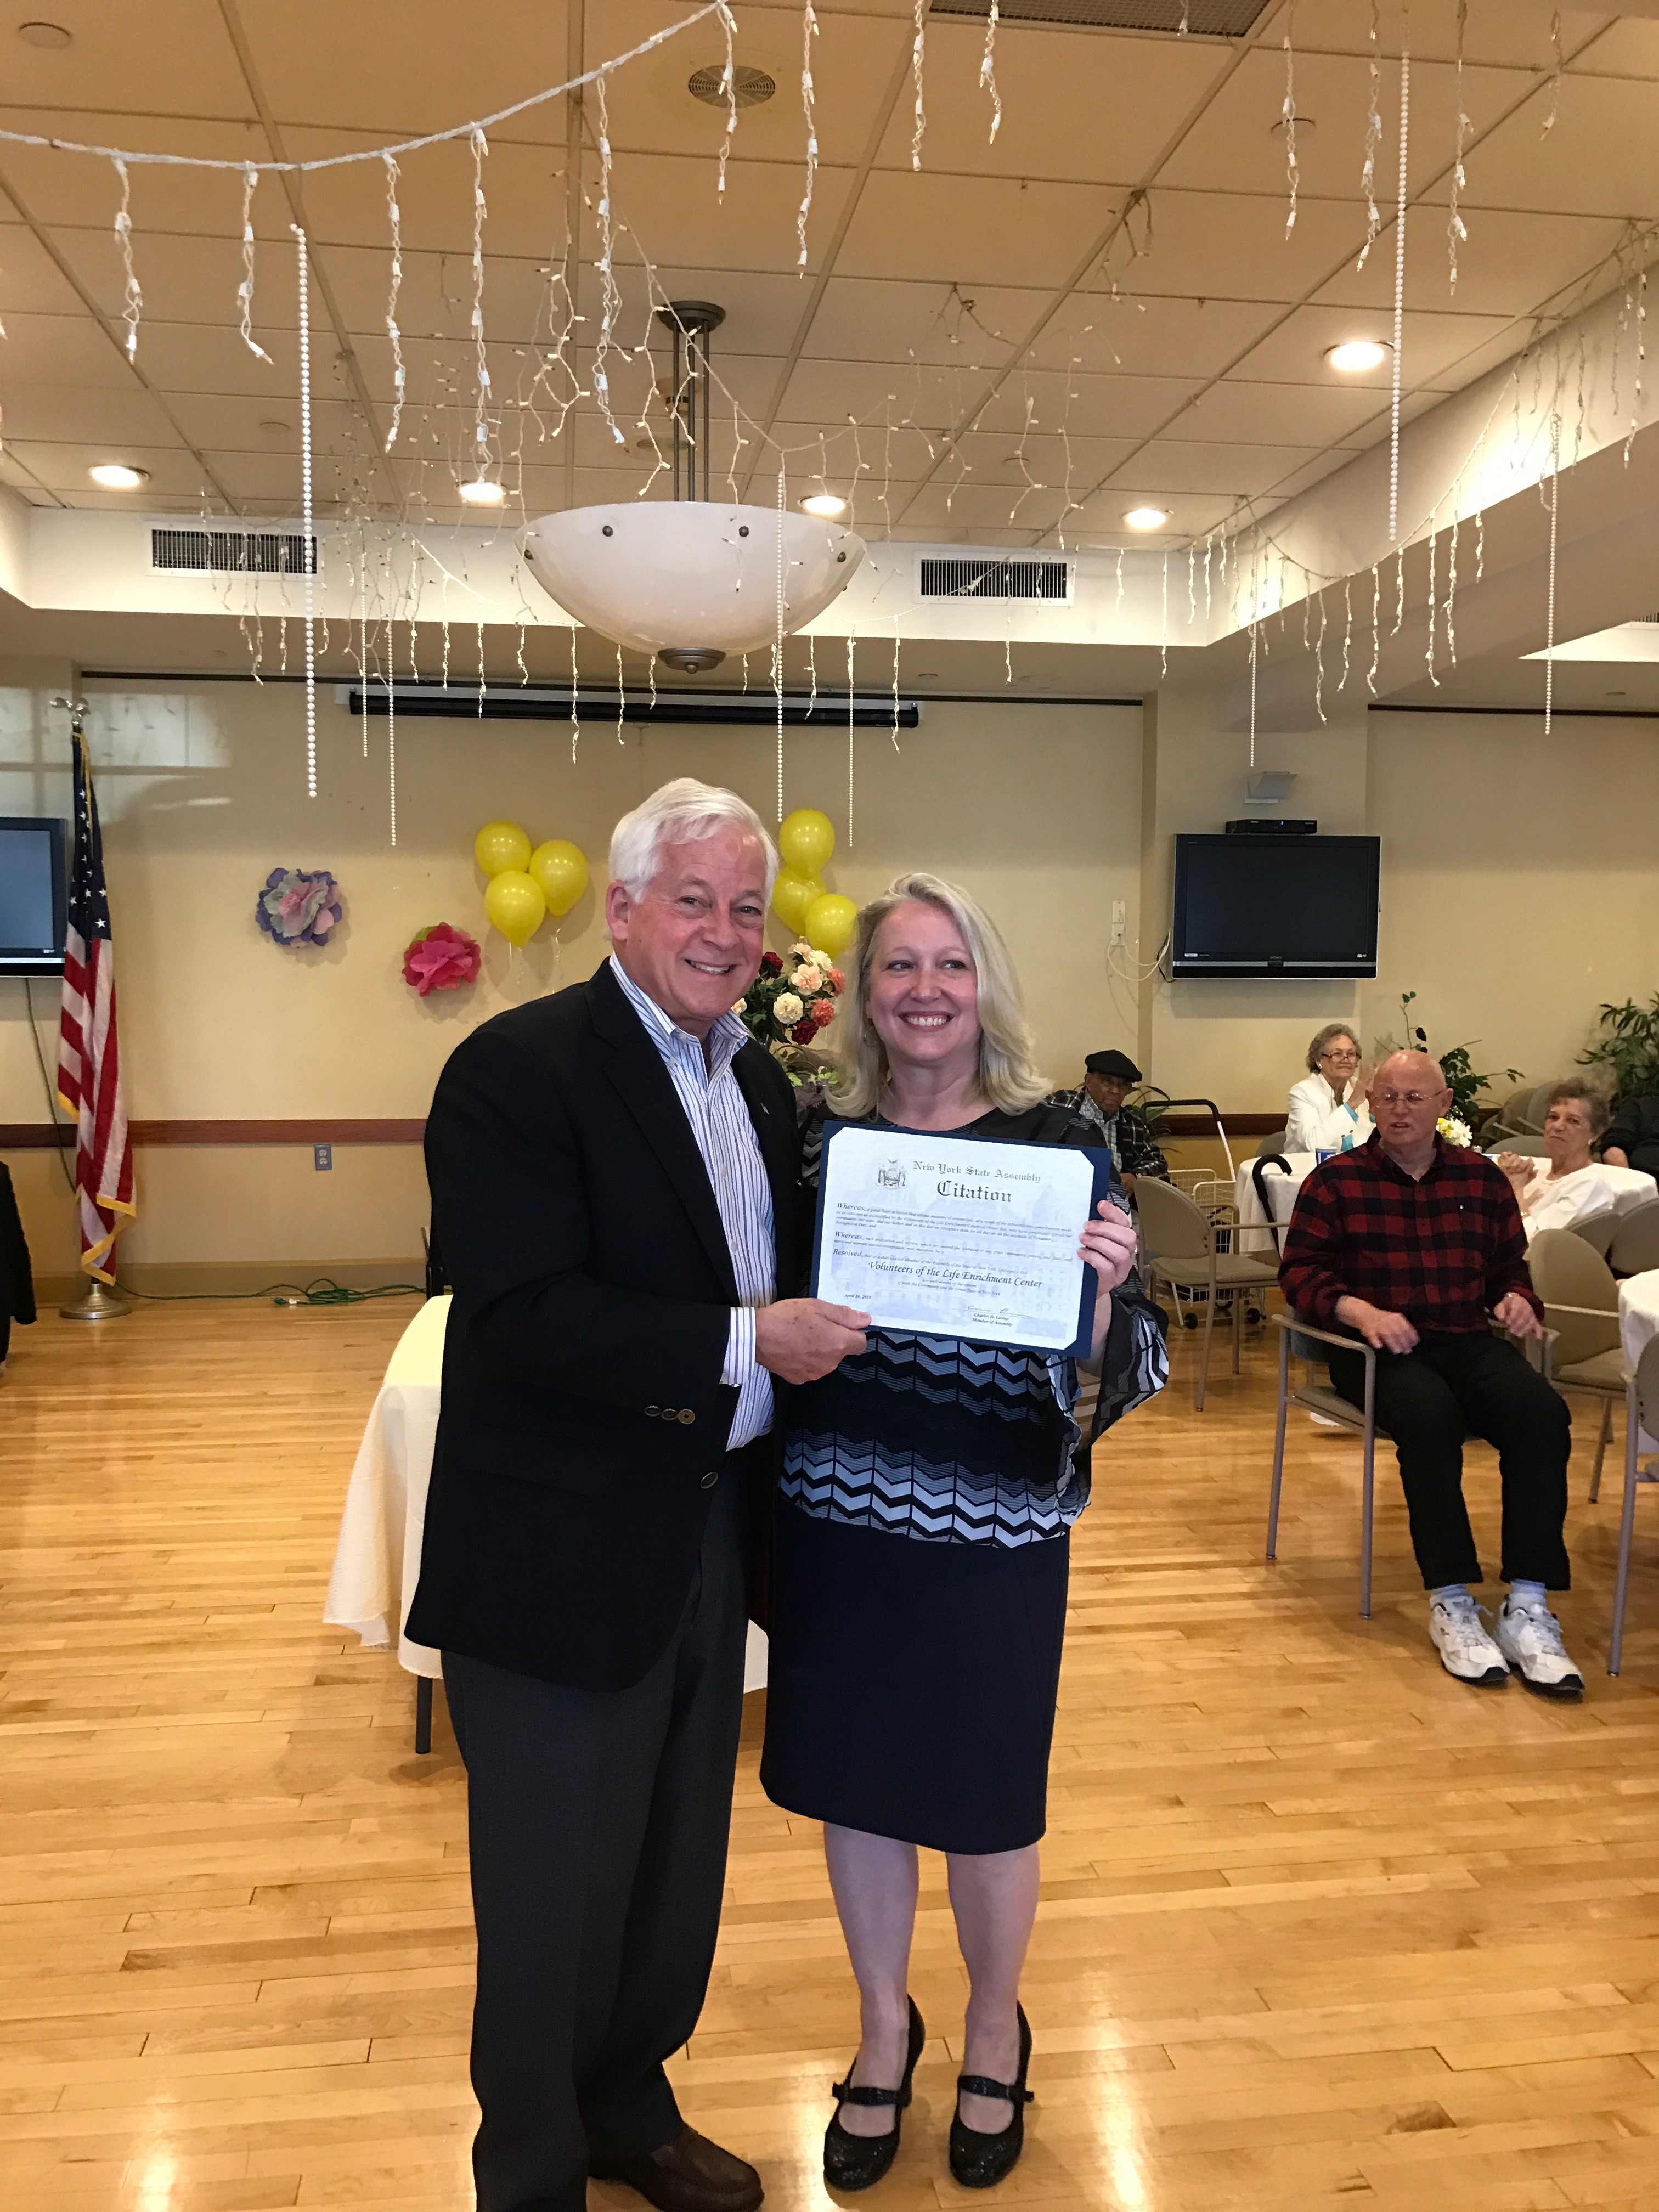 Pictured are Assemblyman Charles Lavine and Judy Palumbo, Executive Director of The Life Enrichment Center at Oyster Bay.